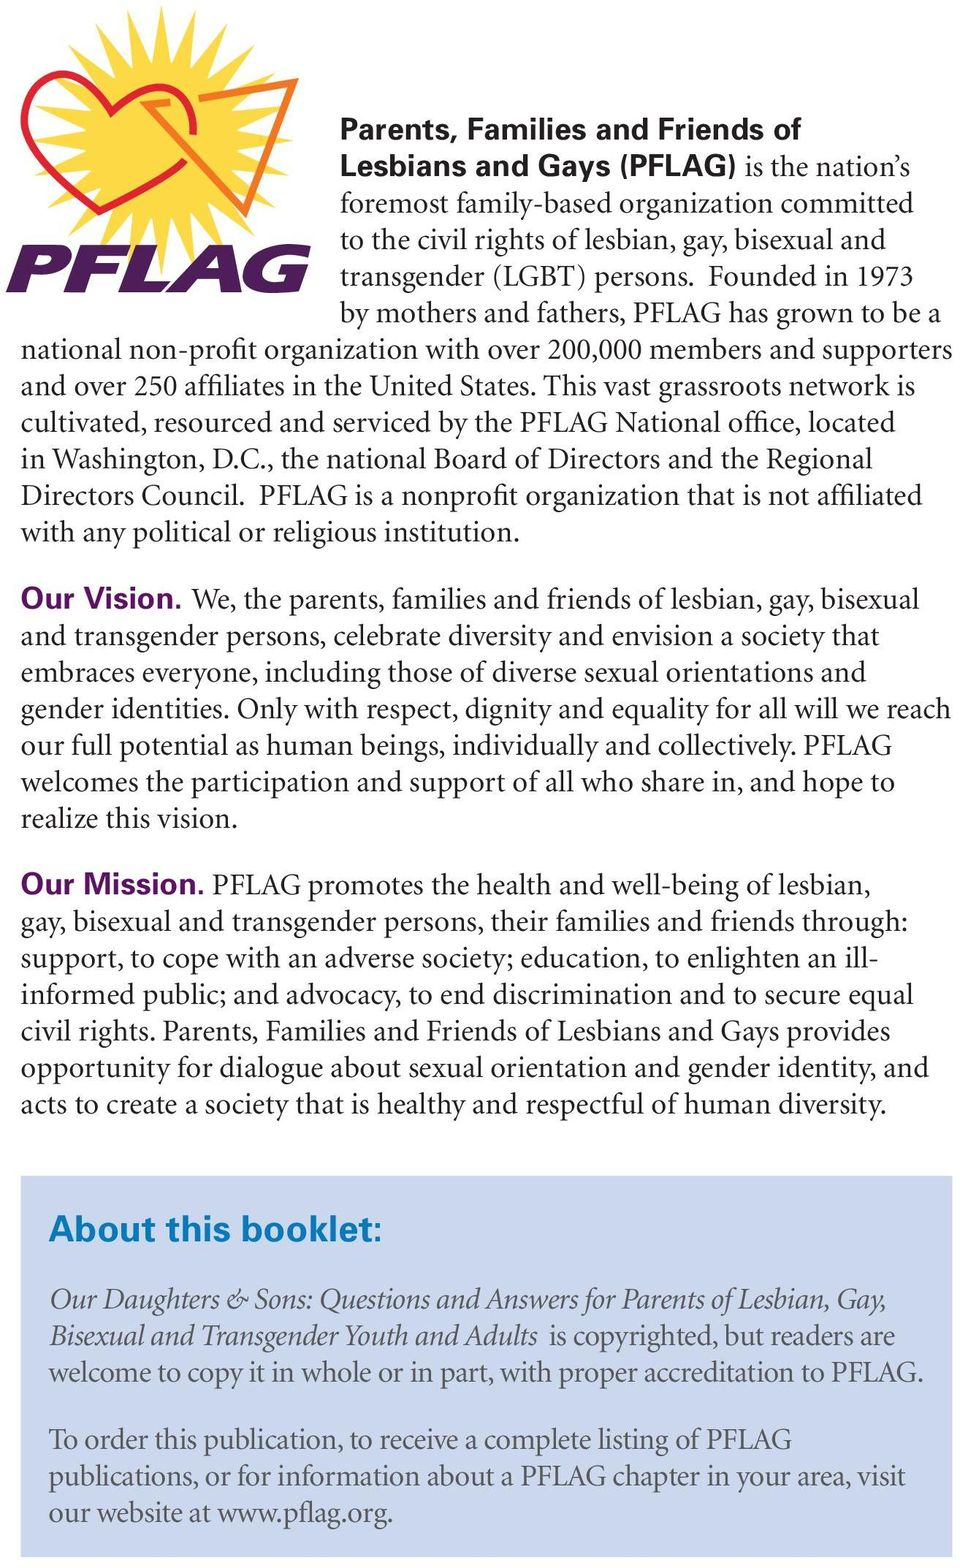 This vast grassroots network is cultivated, resourced and serviced by the PFLAG National office, located in Washington, D.C., the national Board of Directors and the Regional Directors Council.